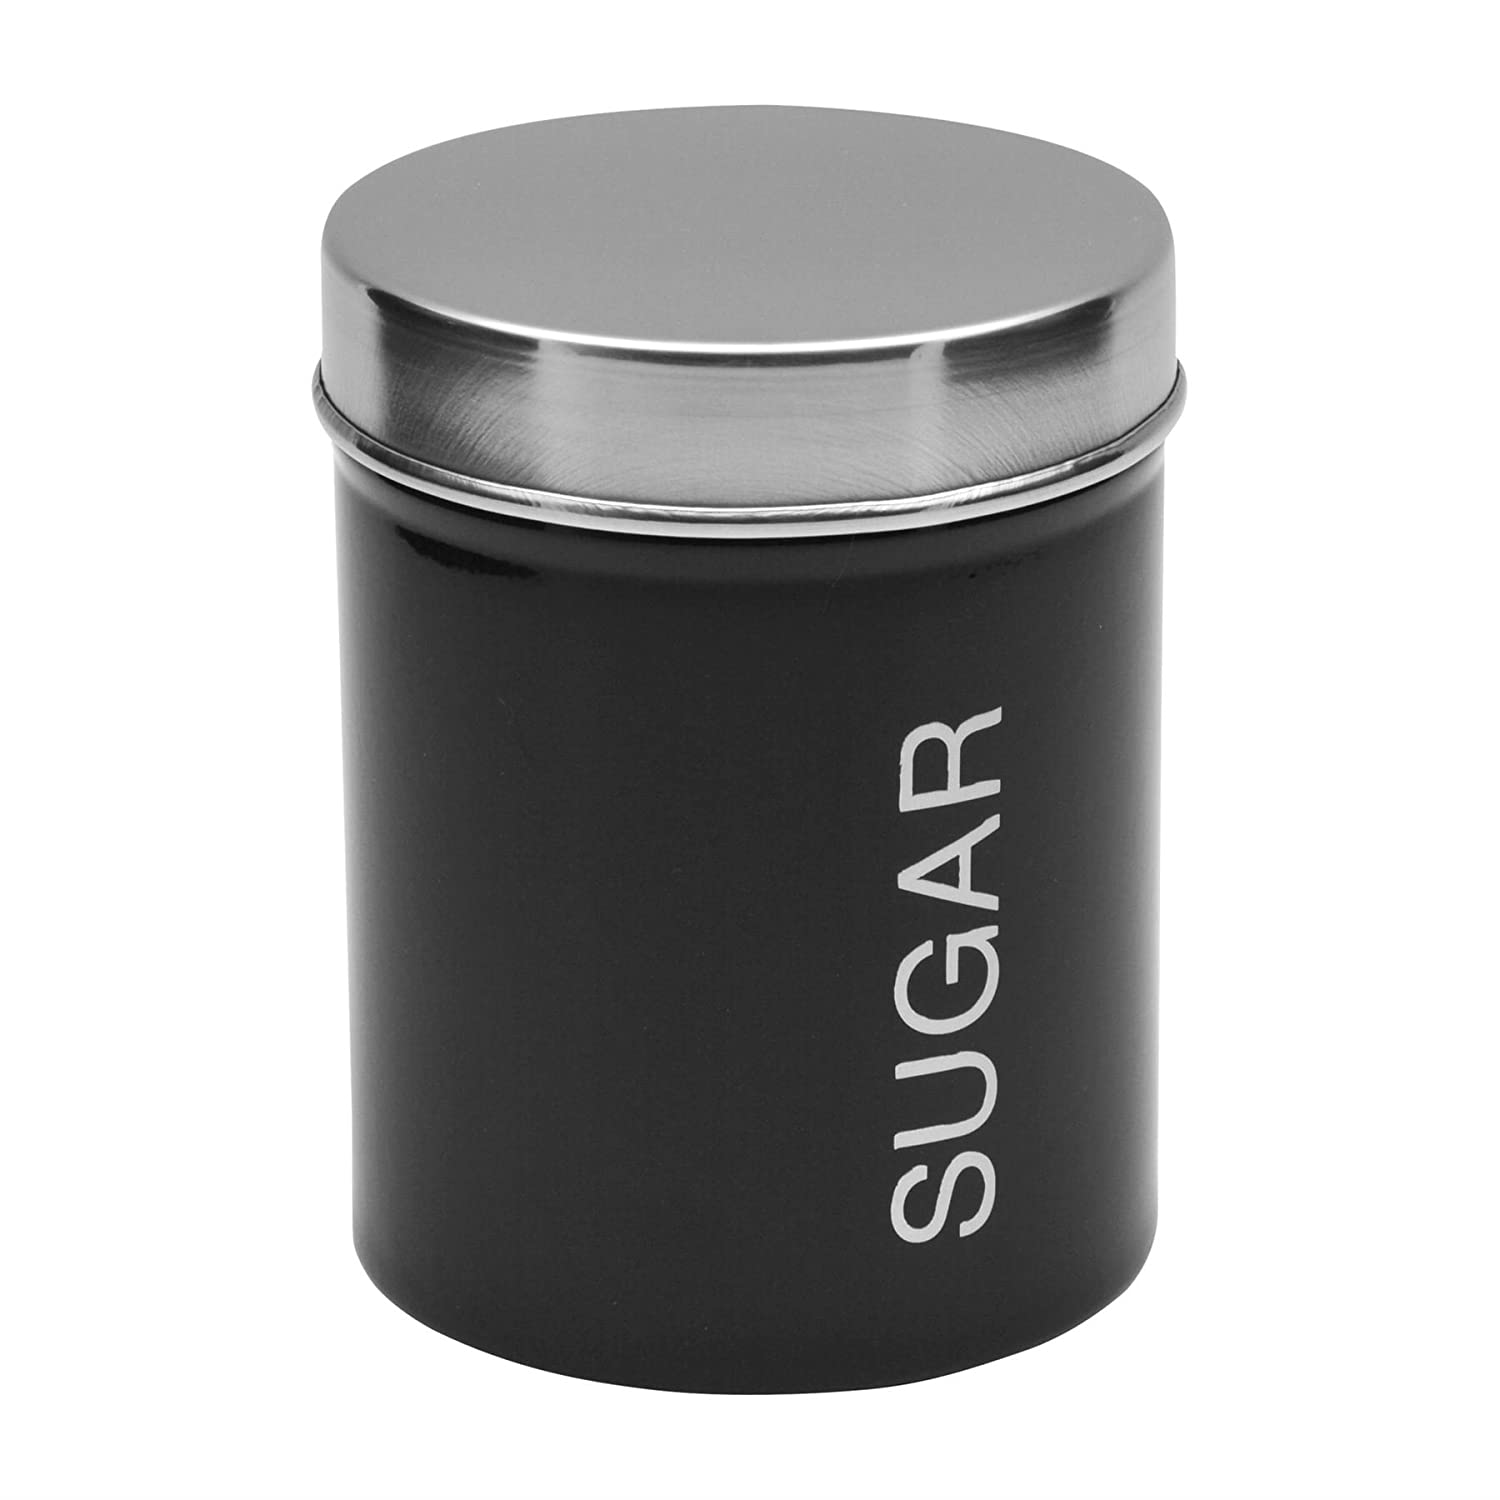 Harbour Housewares Metal Sugar Canister - Black